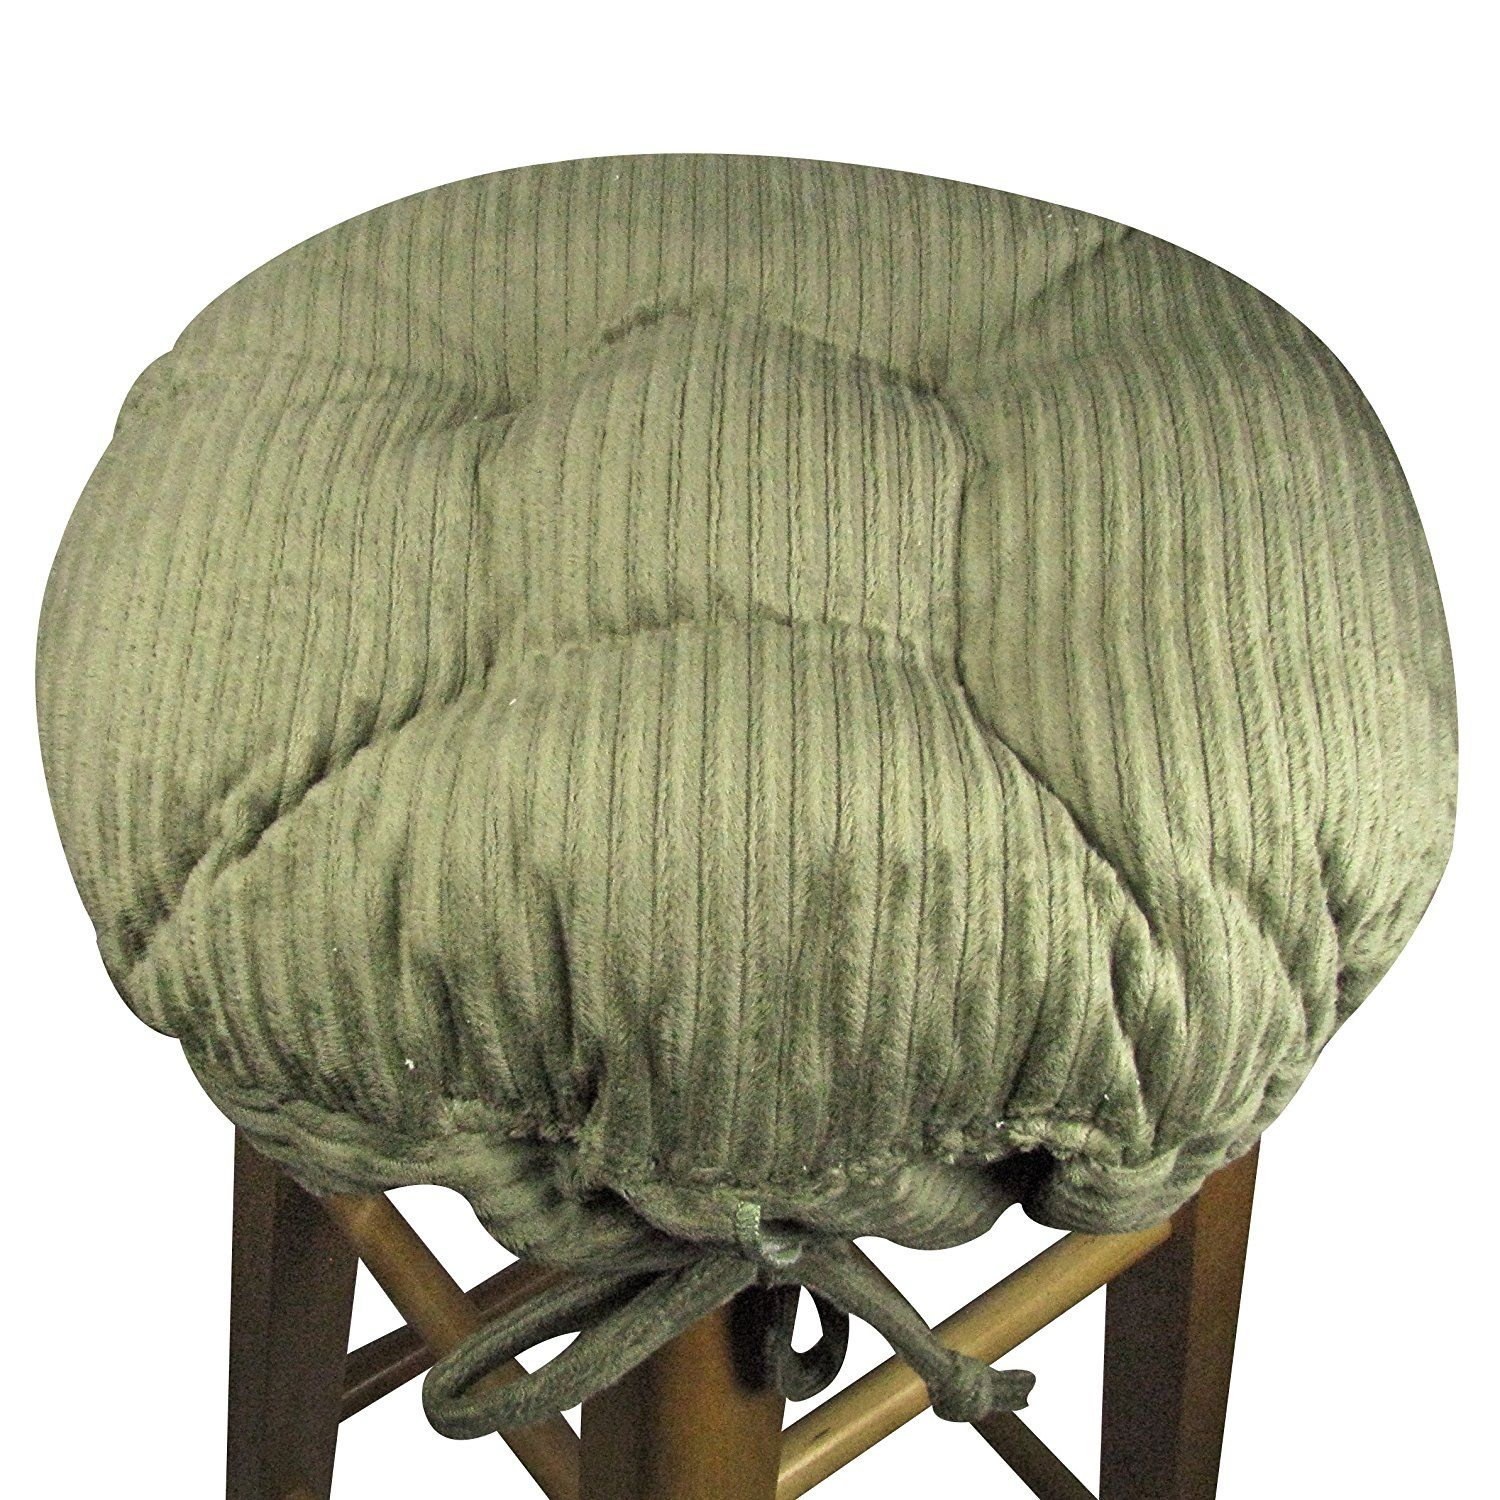 Bar Stools Cover Seat Bar Stool Covers Stool Covers Oversized Chair Ottoman